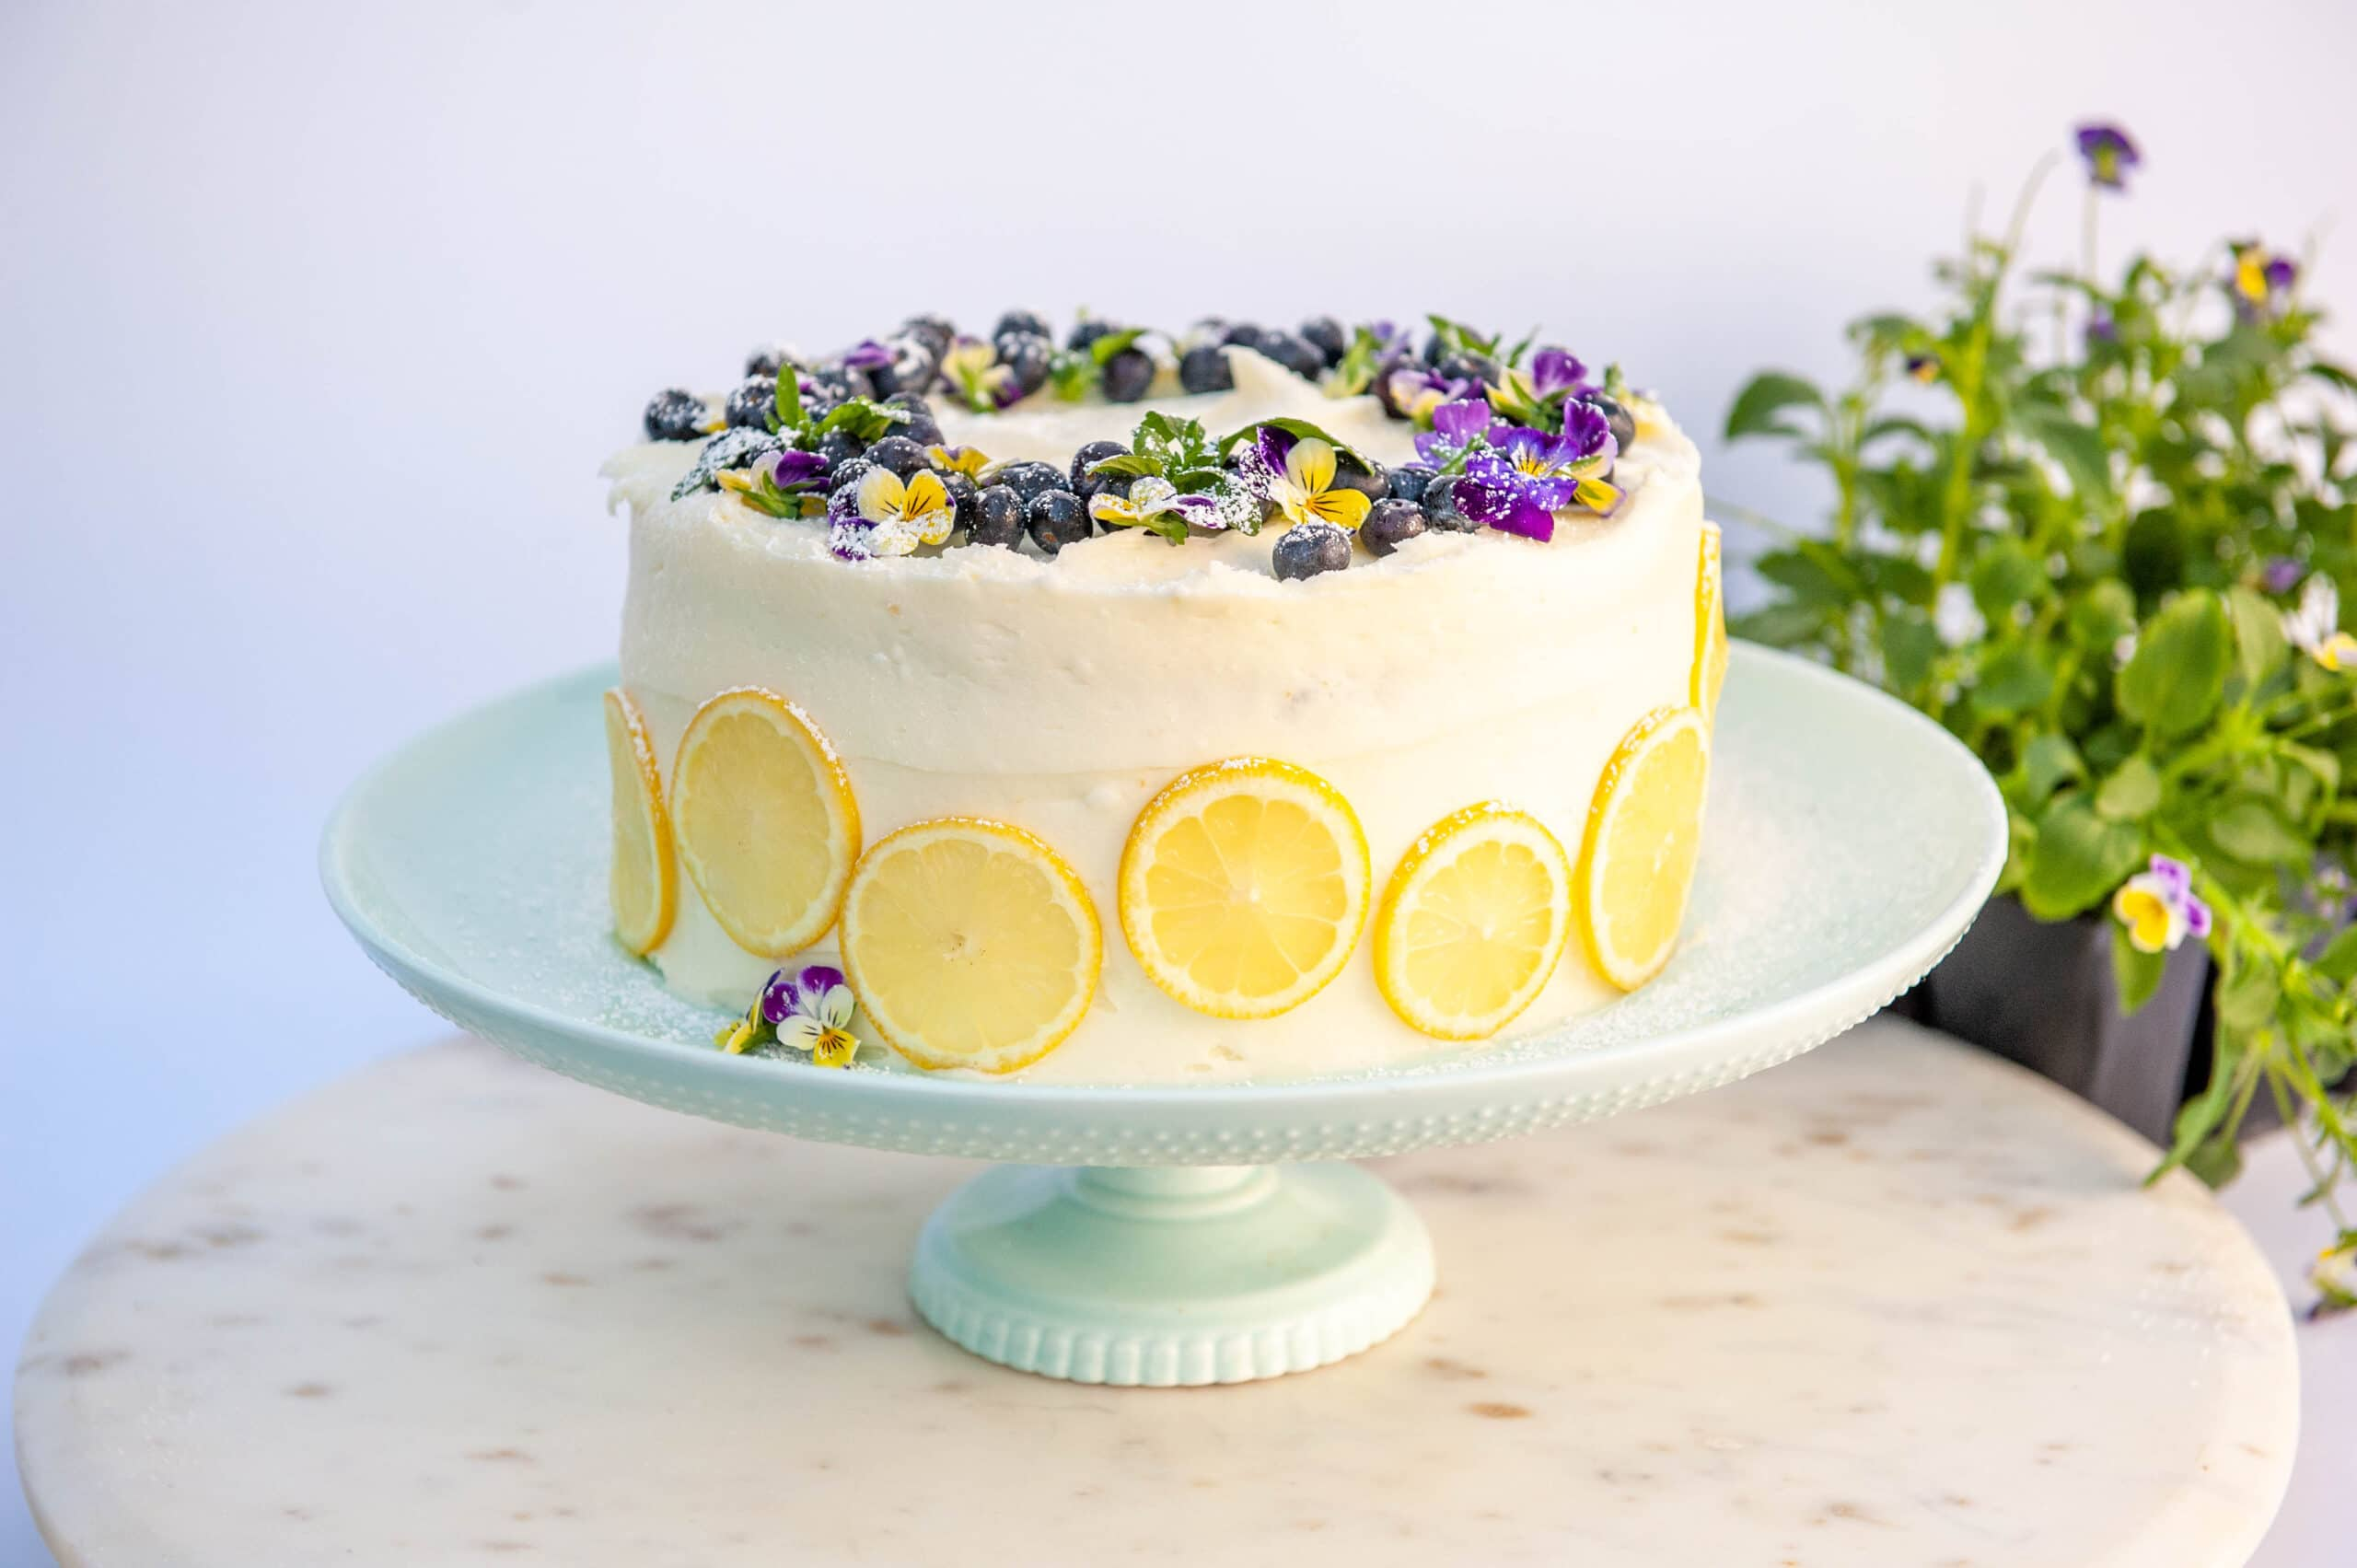 lemon blueberry layer cake on light blue cake stand